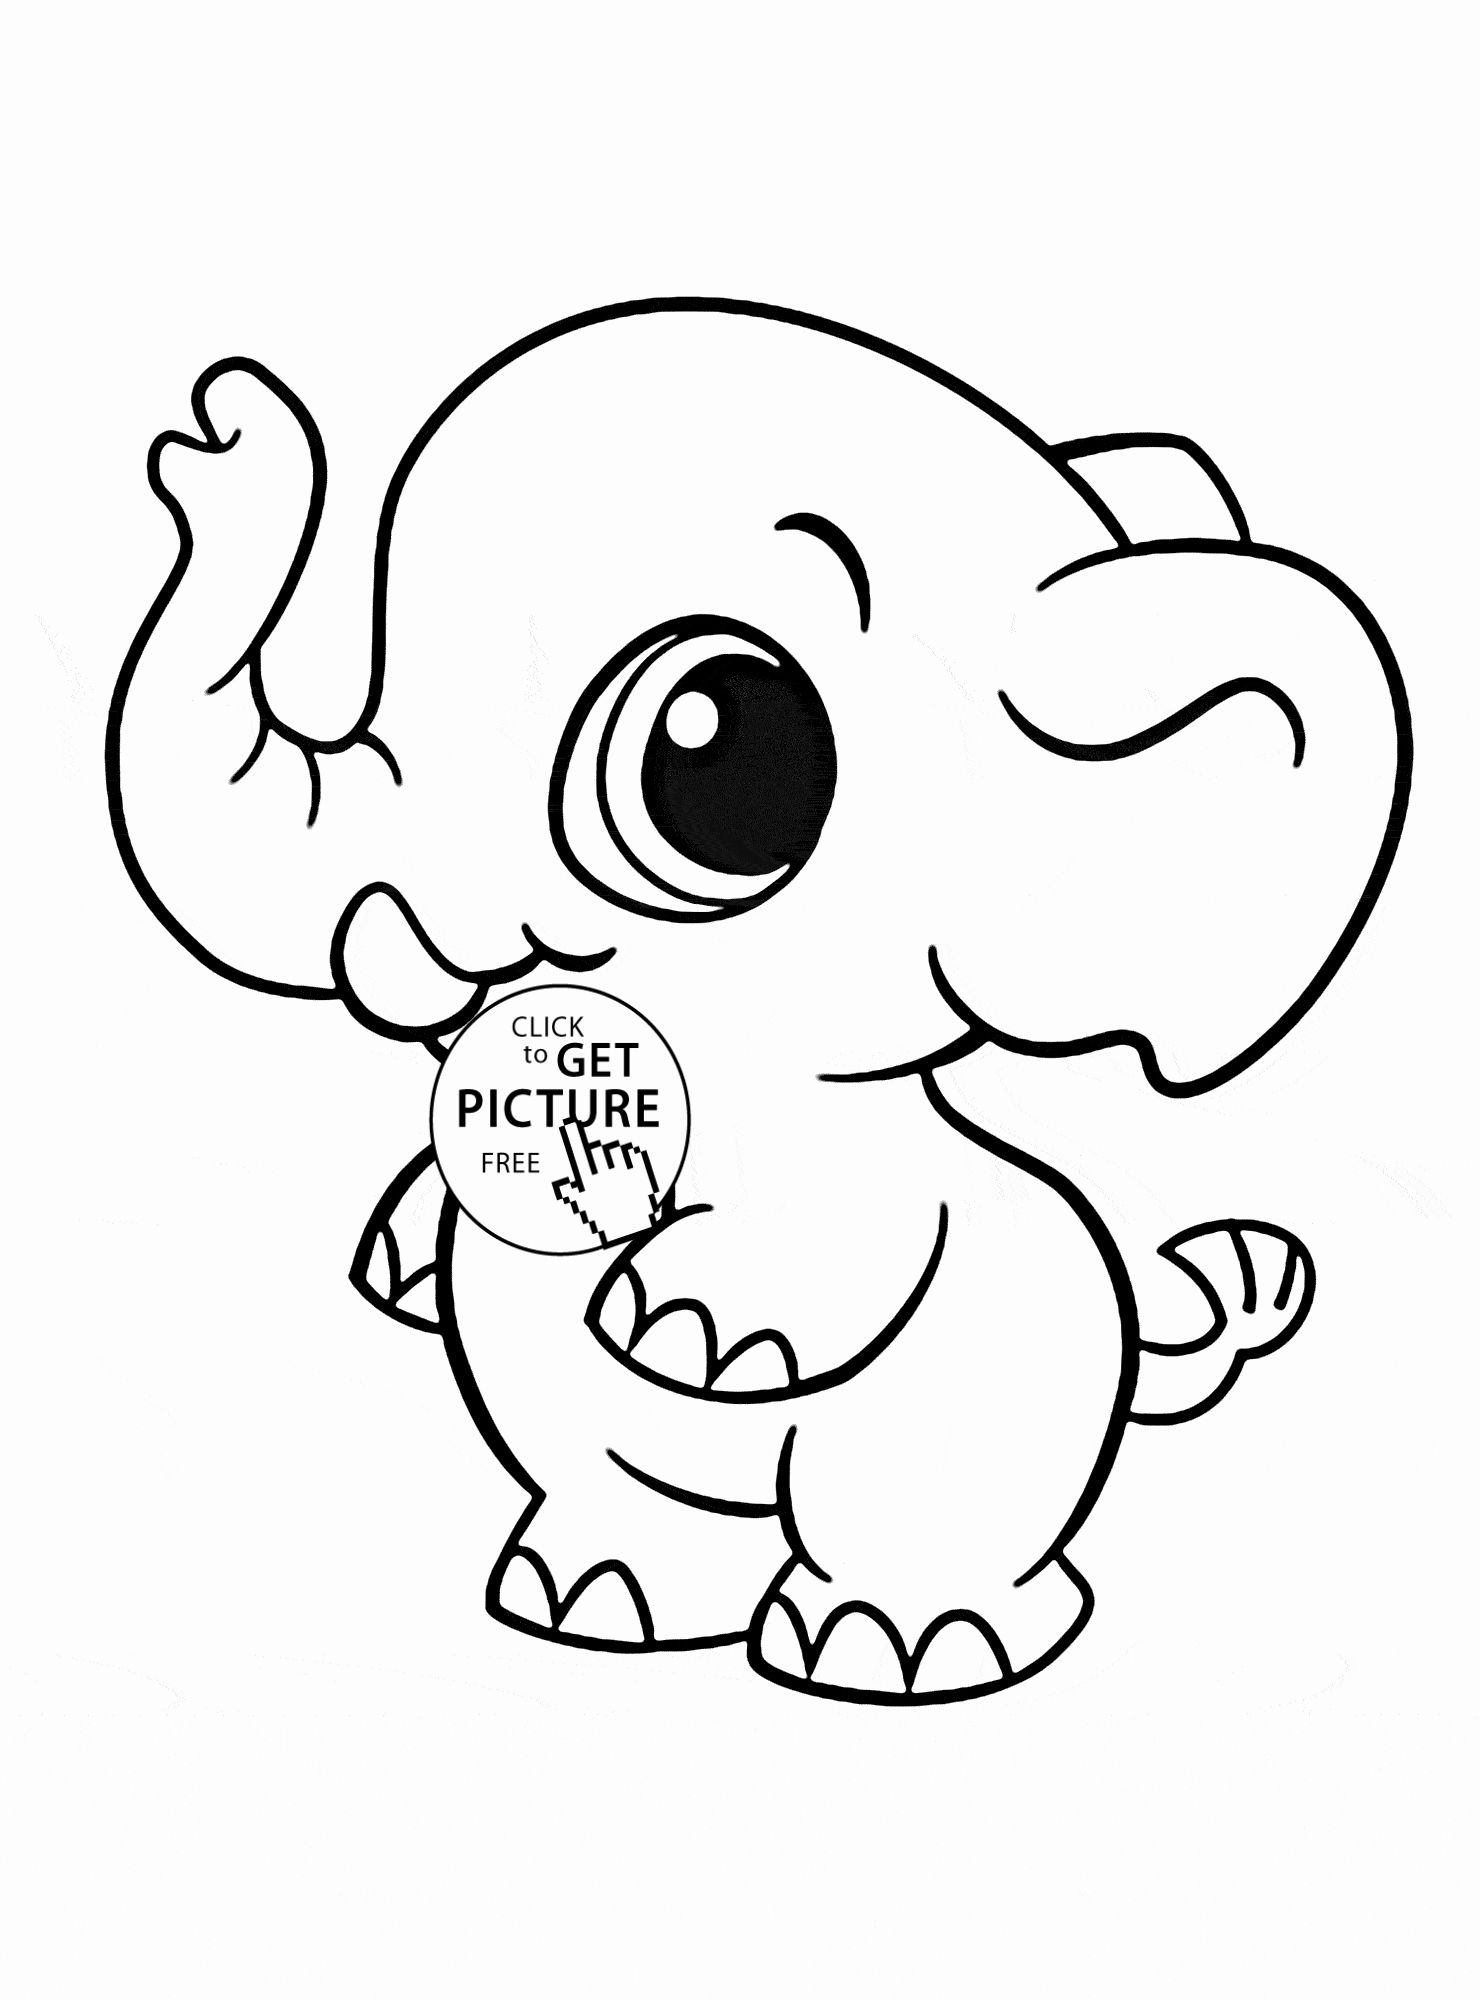 Coloring Pages Kawaii Animals Lovely Funny Animals Coloring Page Cute Dog Coloring Page In 2020 Zoo Animal Coloring Pages Unicorn Coloring Pages Elephant Coloring Page